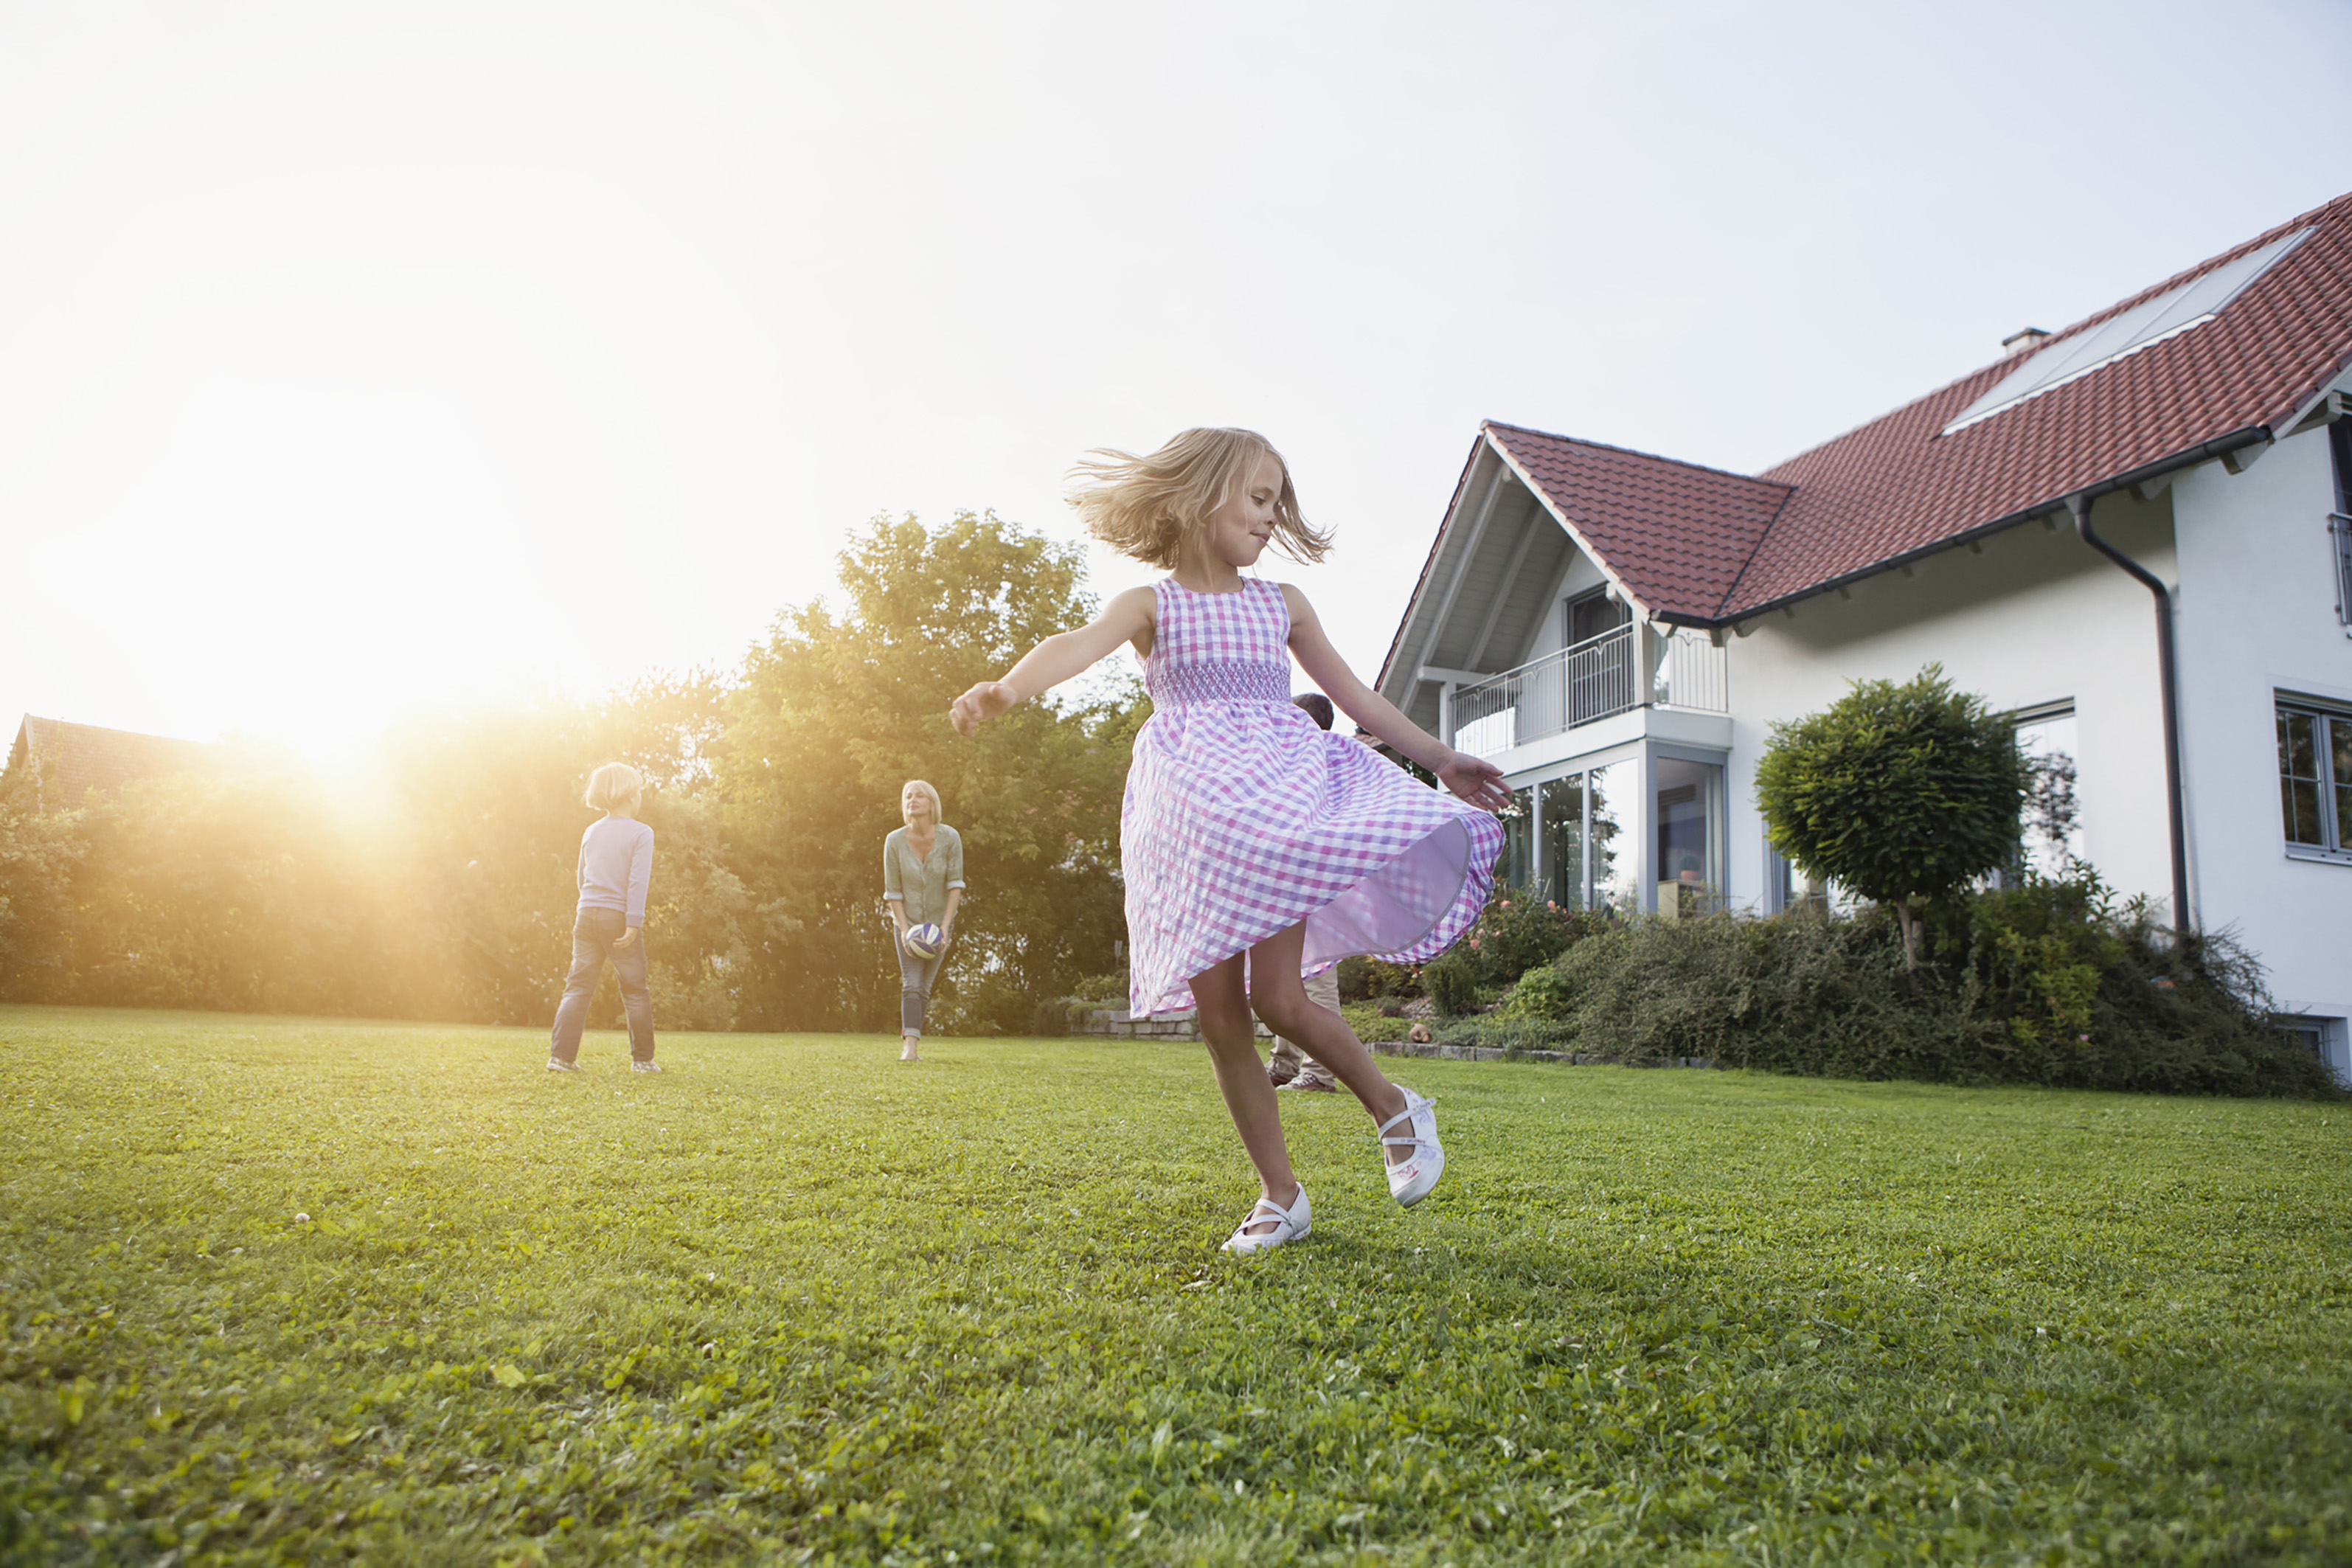 Image-of-a-girl-dancing-in-a-beautiful-garden-with-her-family-enjoying-activities-in-the-background-safe-in-the-knowledge-the-WPL-Diamond-compact-package-sewage-and-wastewater-treatment-plant-is-Simple-Reliable-and-Discreet – UK campaign